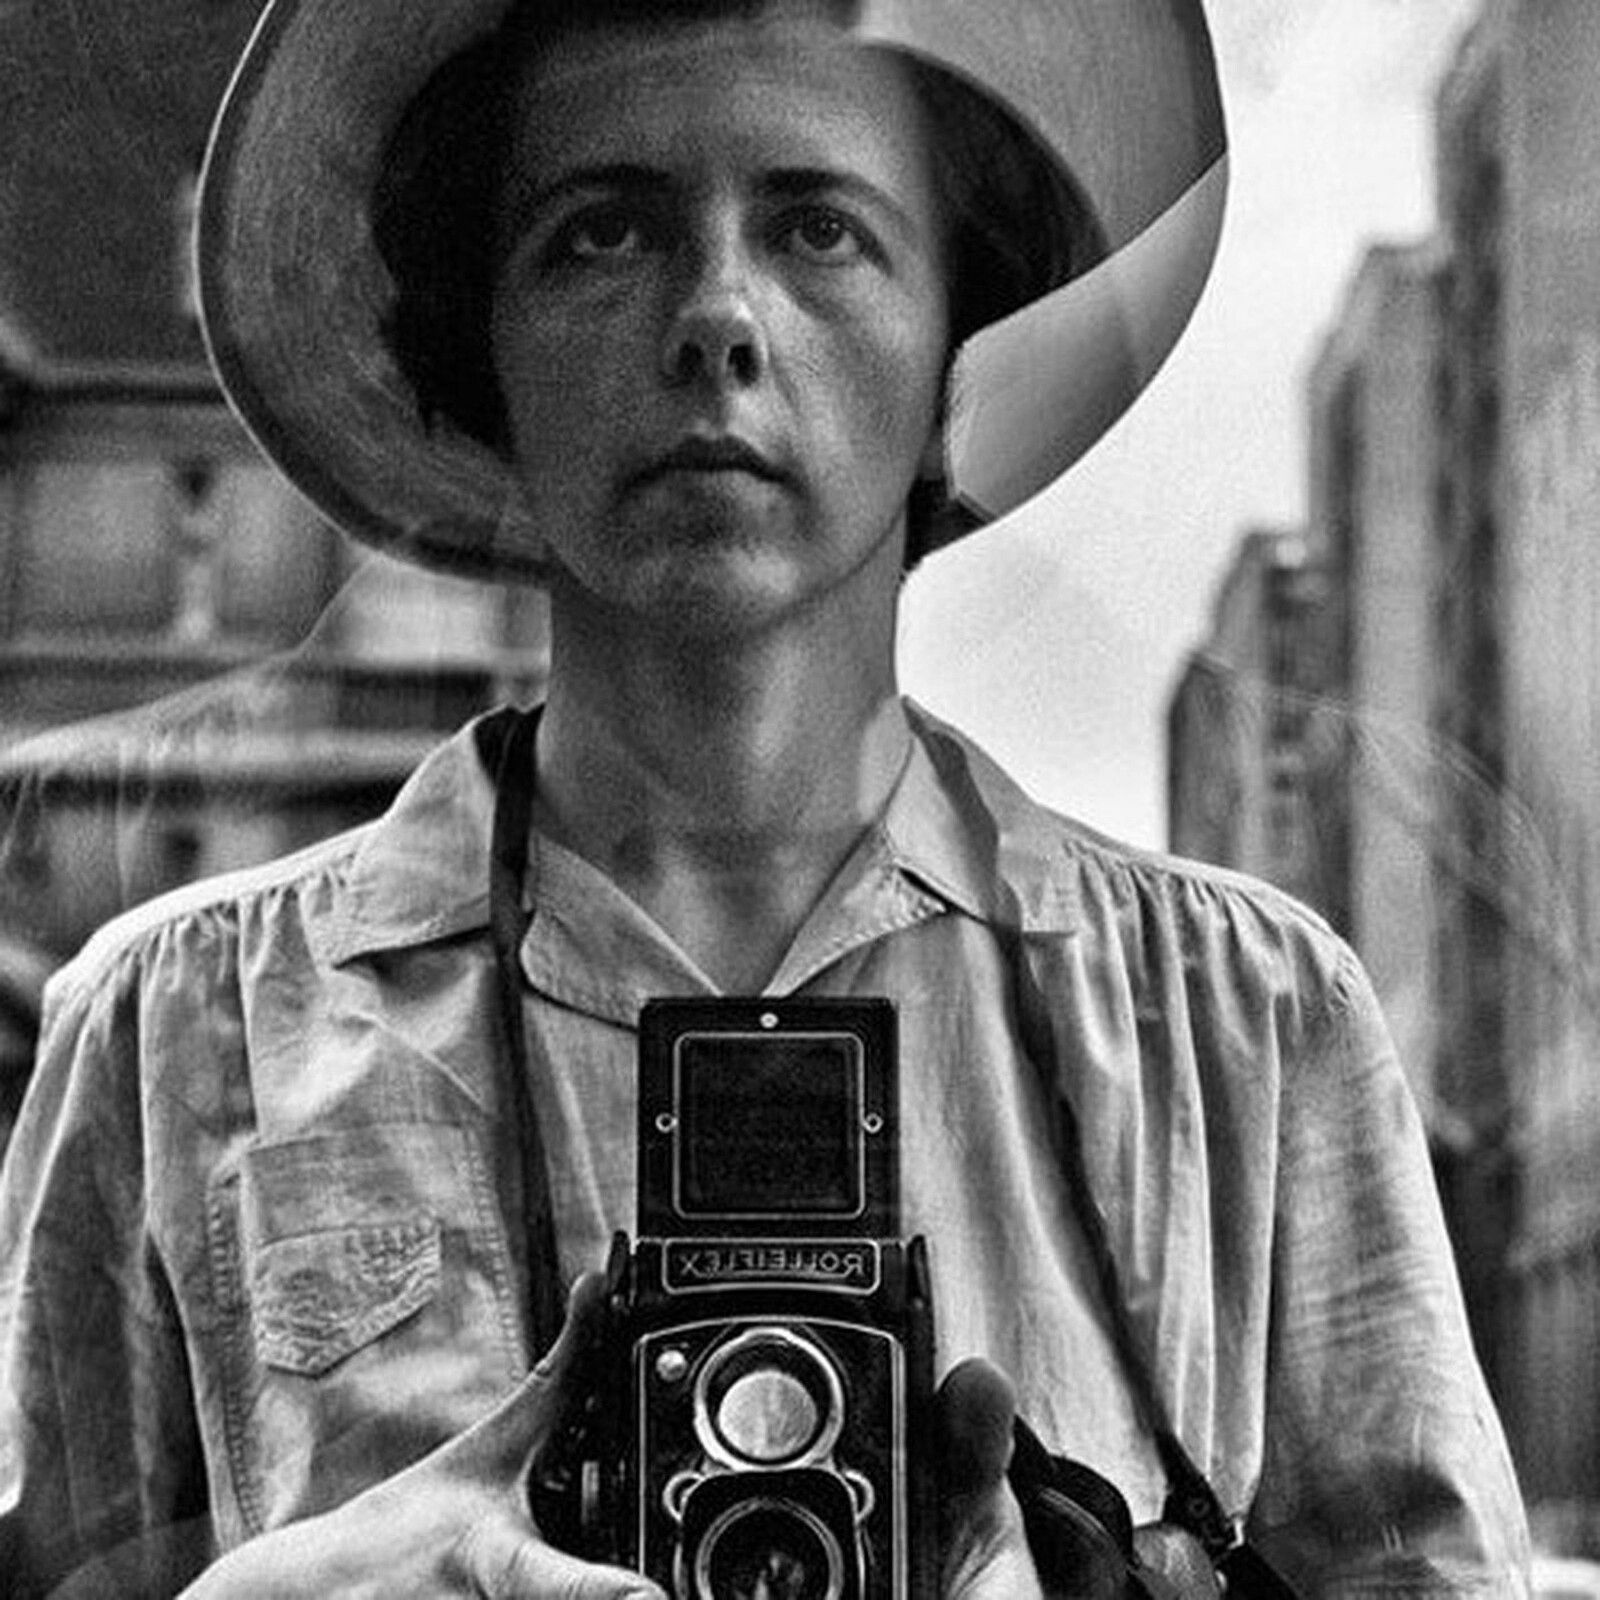 """""""Auto portrait - New York, 1954"""" de Vivian MAIER   © Estate of Vivian Maier, Courtesy of Maloof Collection and Howard Greenberg Gallery, NY"""